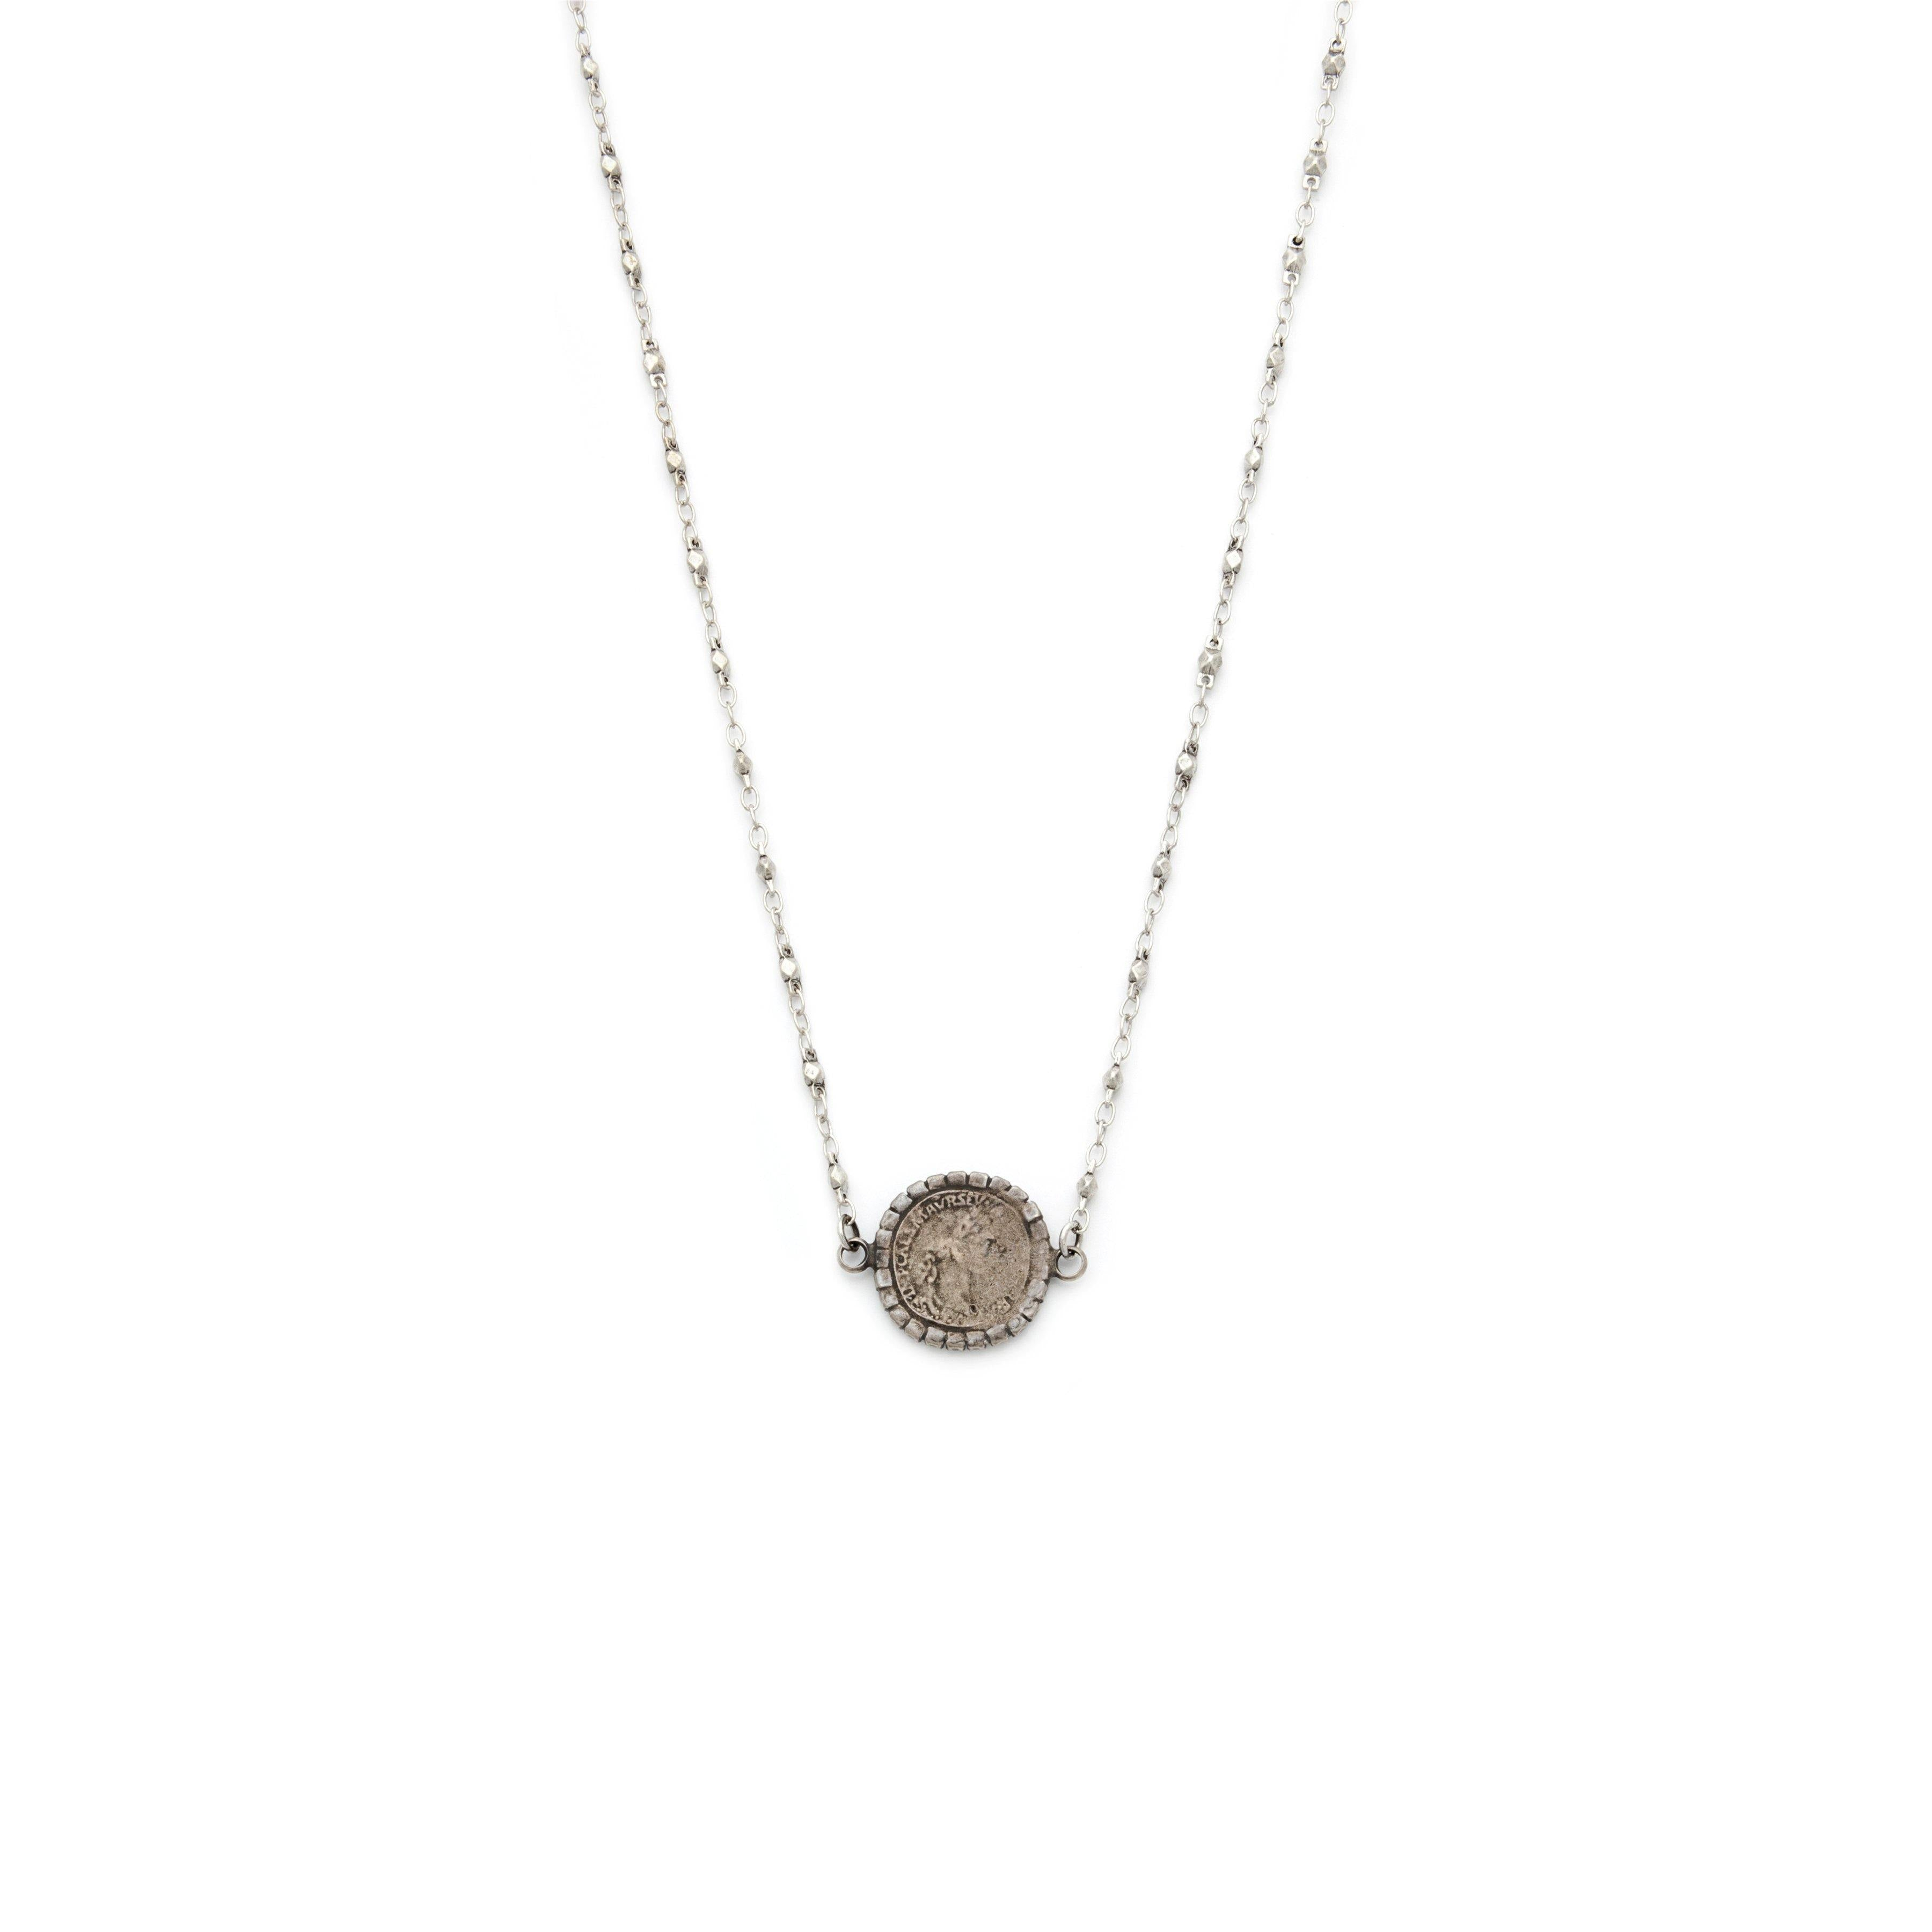 Roma Coin Silver Necklace - Irit Sorokin Designs Canadian handmade jewelry